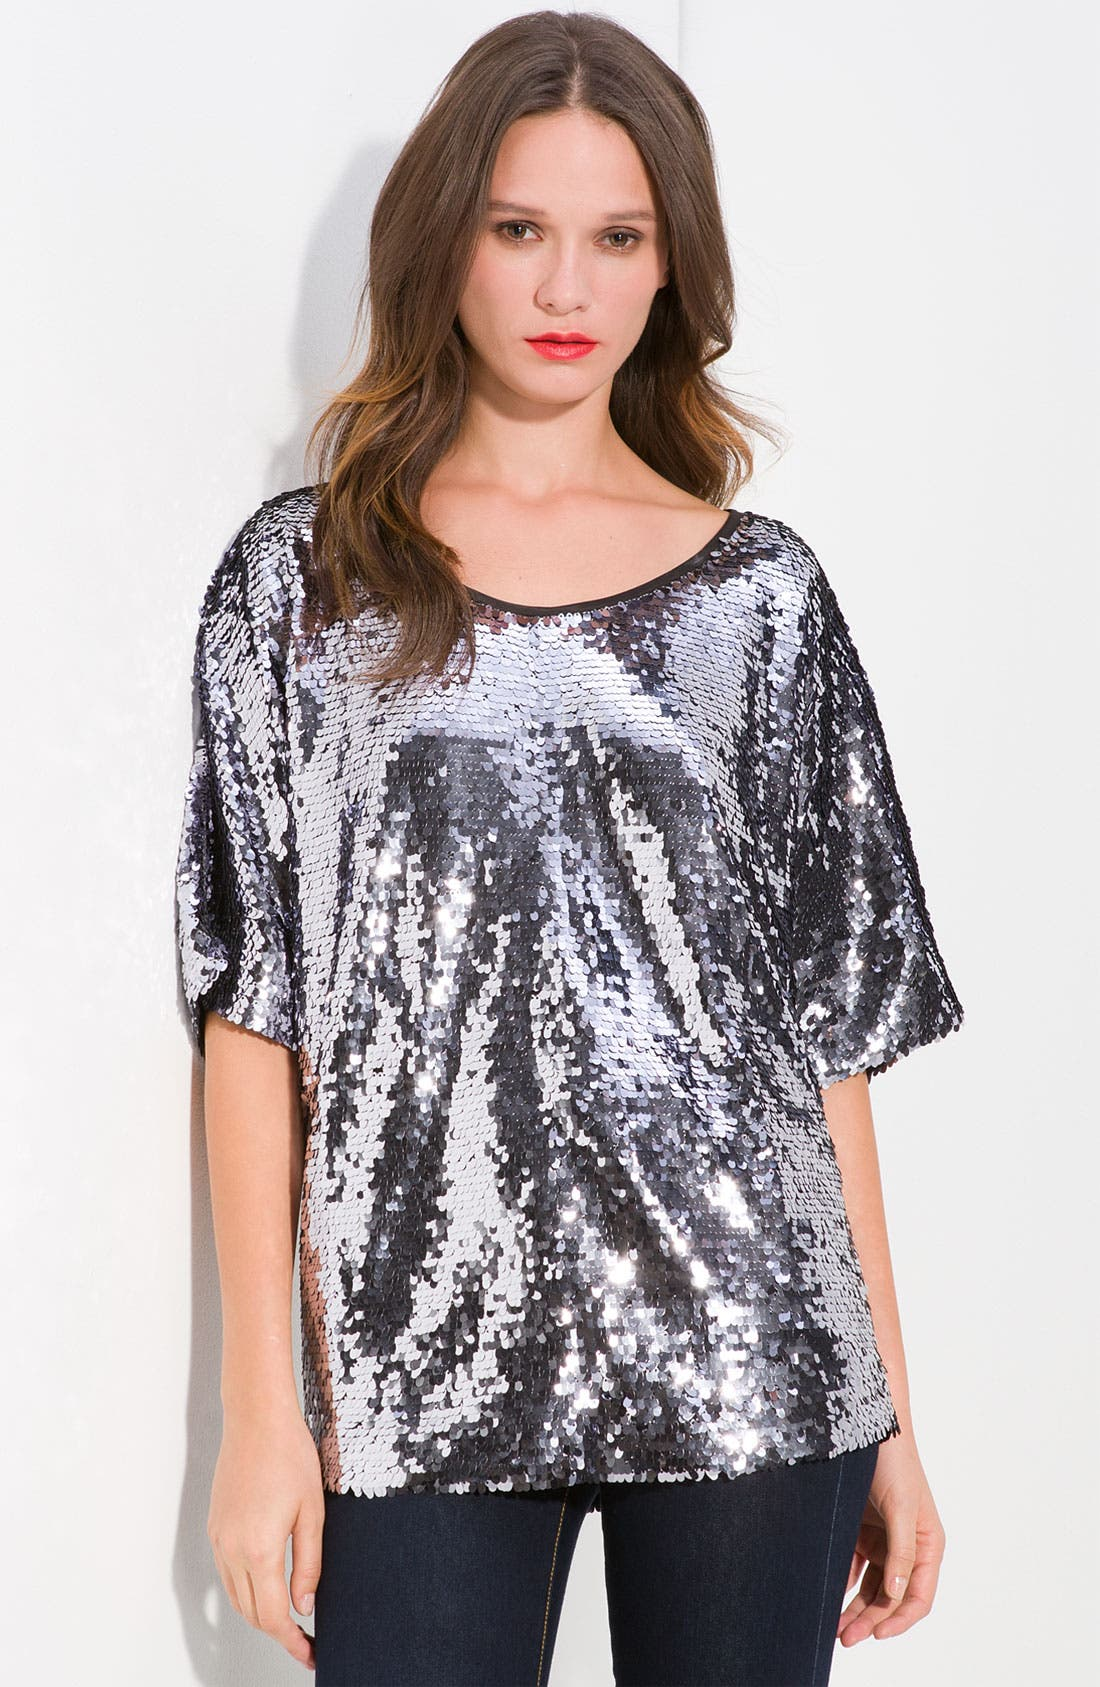 Main Image - Rachel Zoe Sequin Top